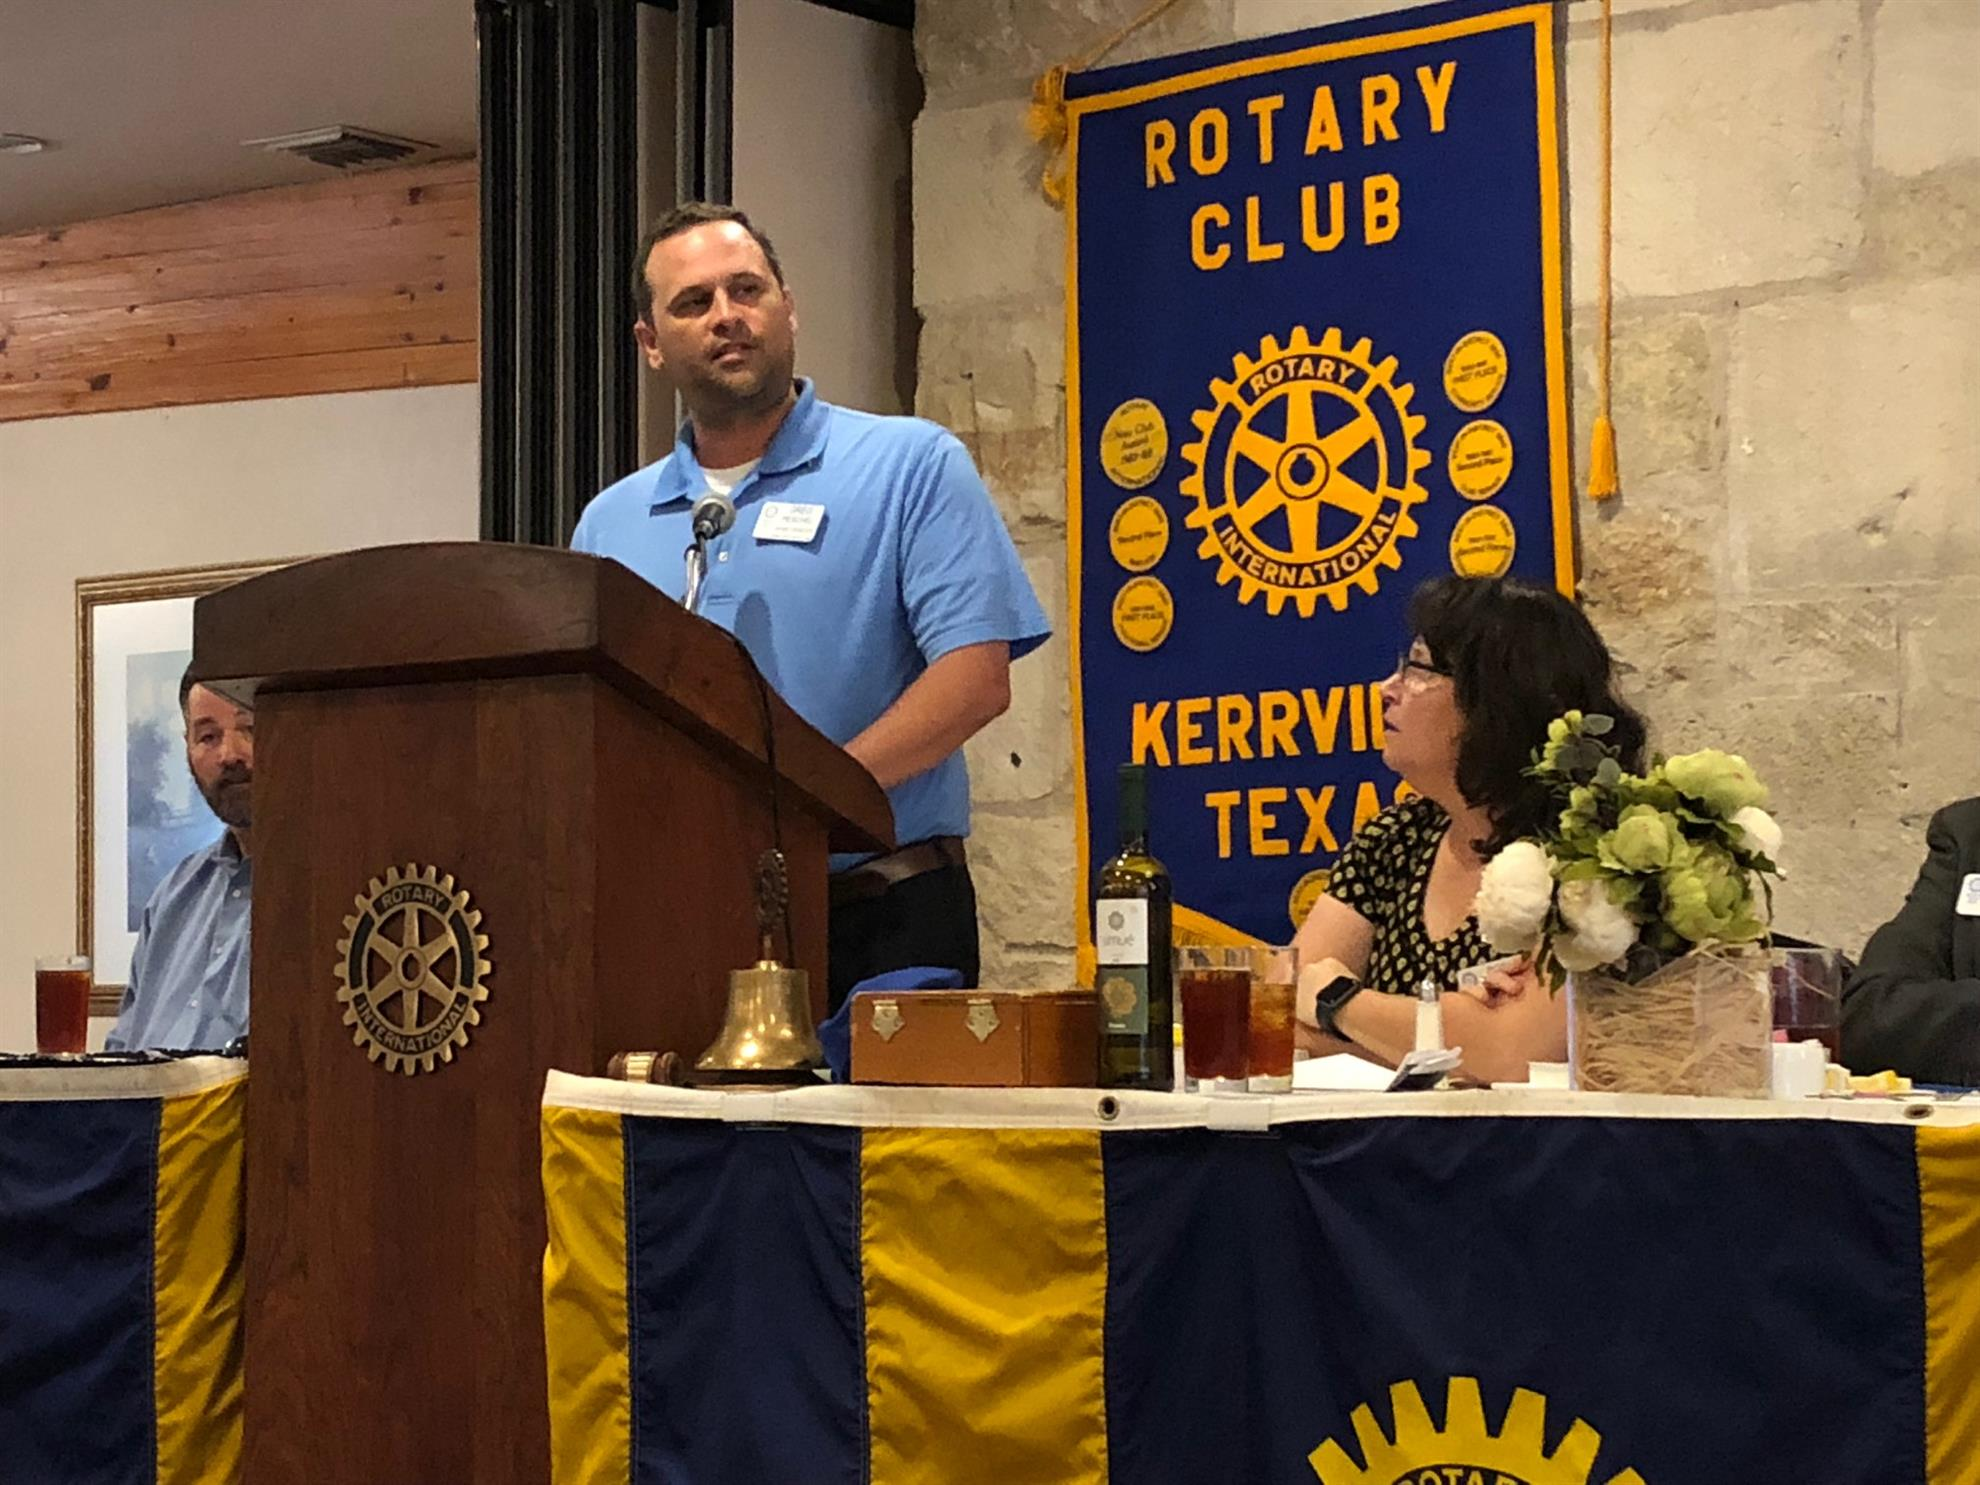 Stories Rotary Club Of Kerrville Just Mom Baju Menyusui Gea 115 Black Etnic Brown Greg Peschel Provided The Prayer And Pledge Also Introduced Our Program Speaker Bobby Templeton